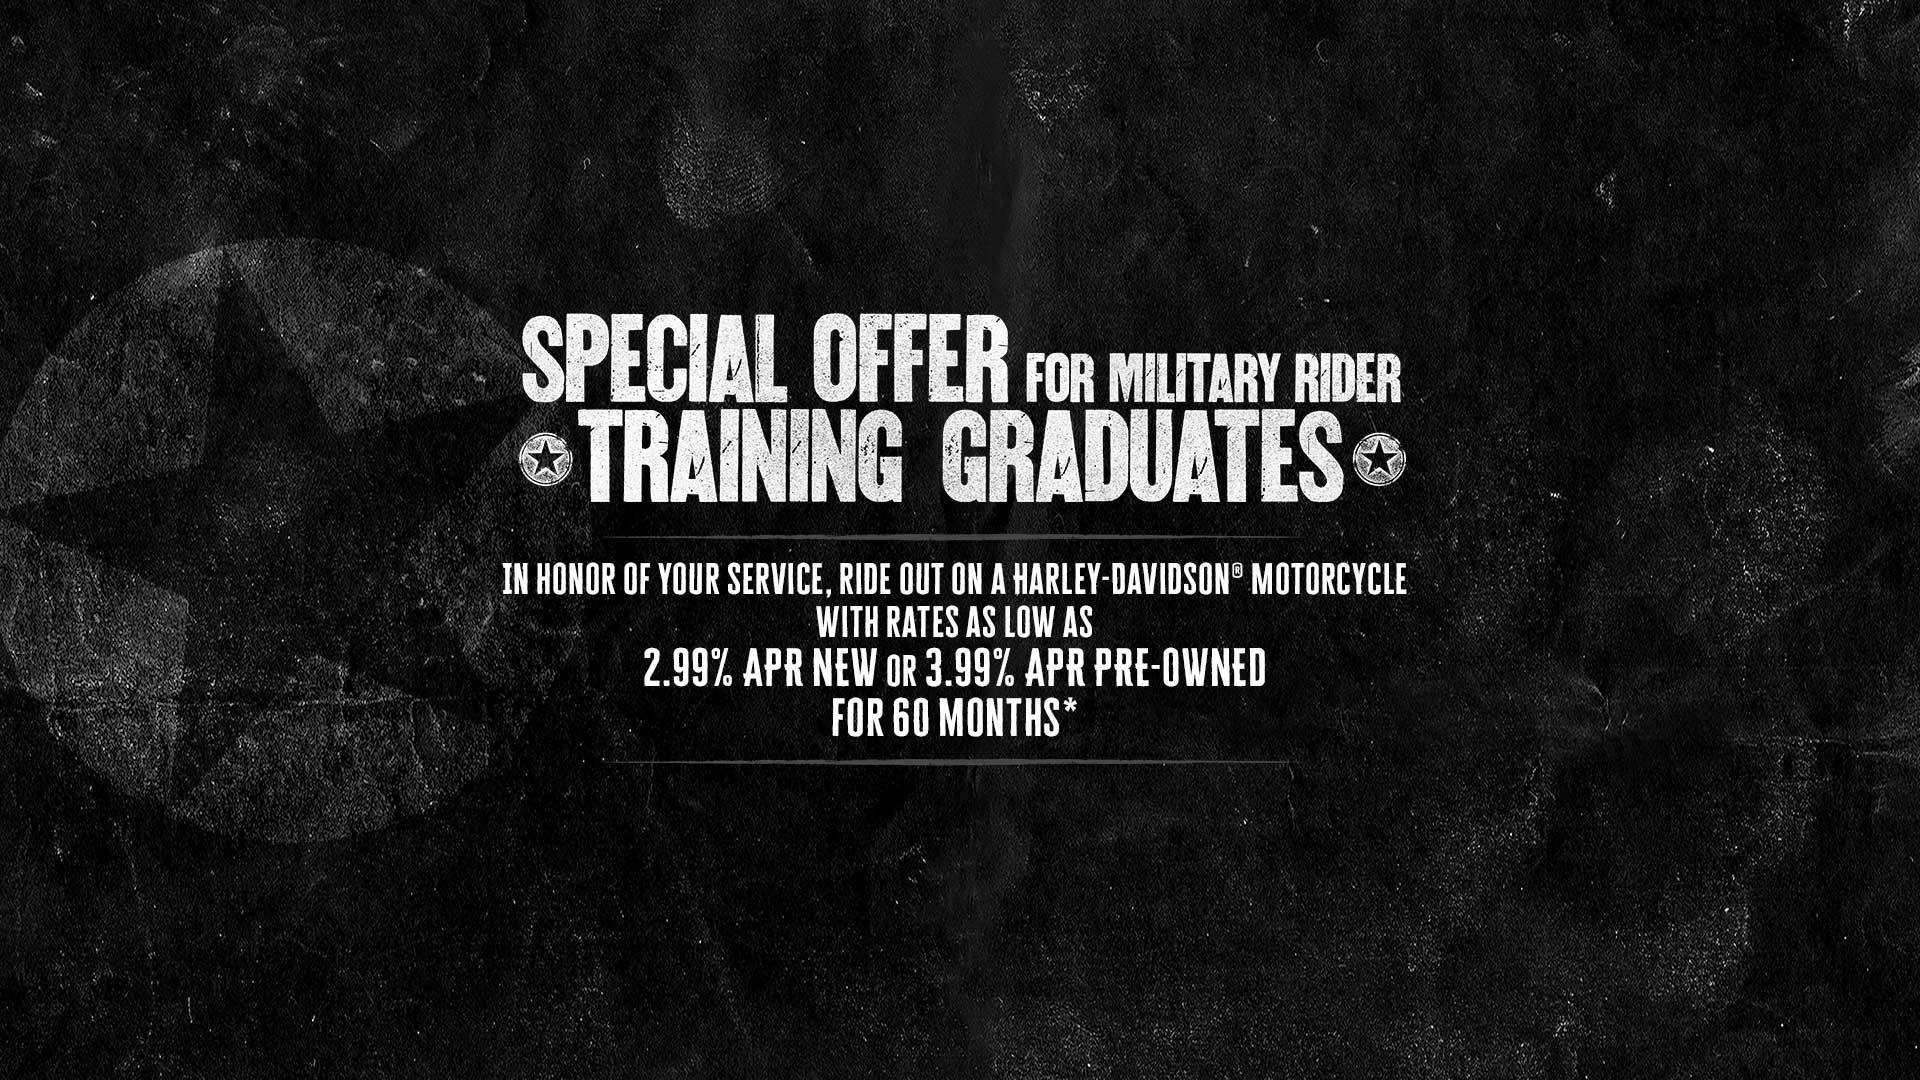 Harley-Davidson MILITARY RIDER TRAINING GRADUATE FINANCING